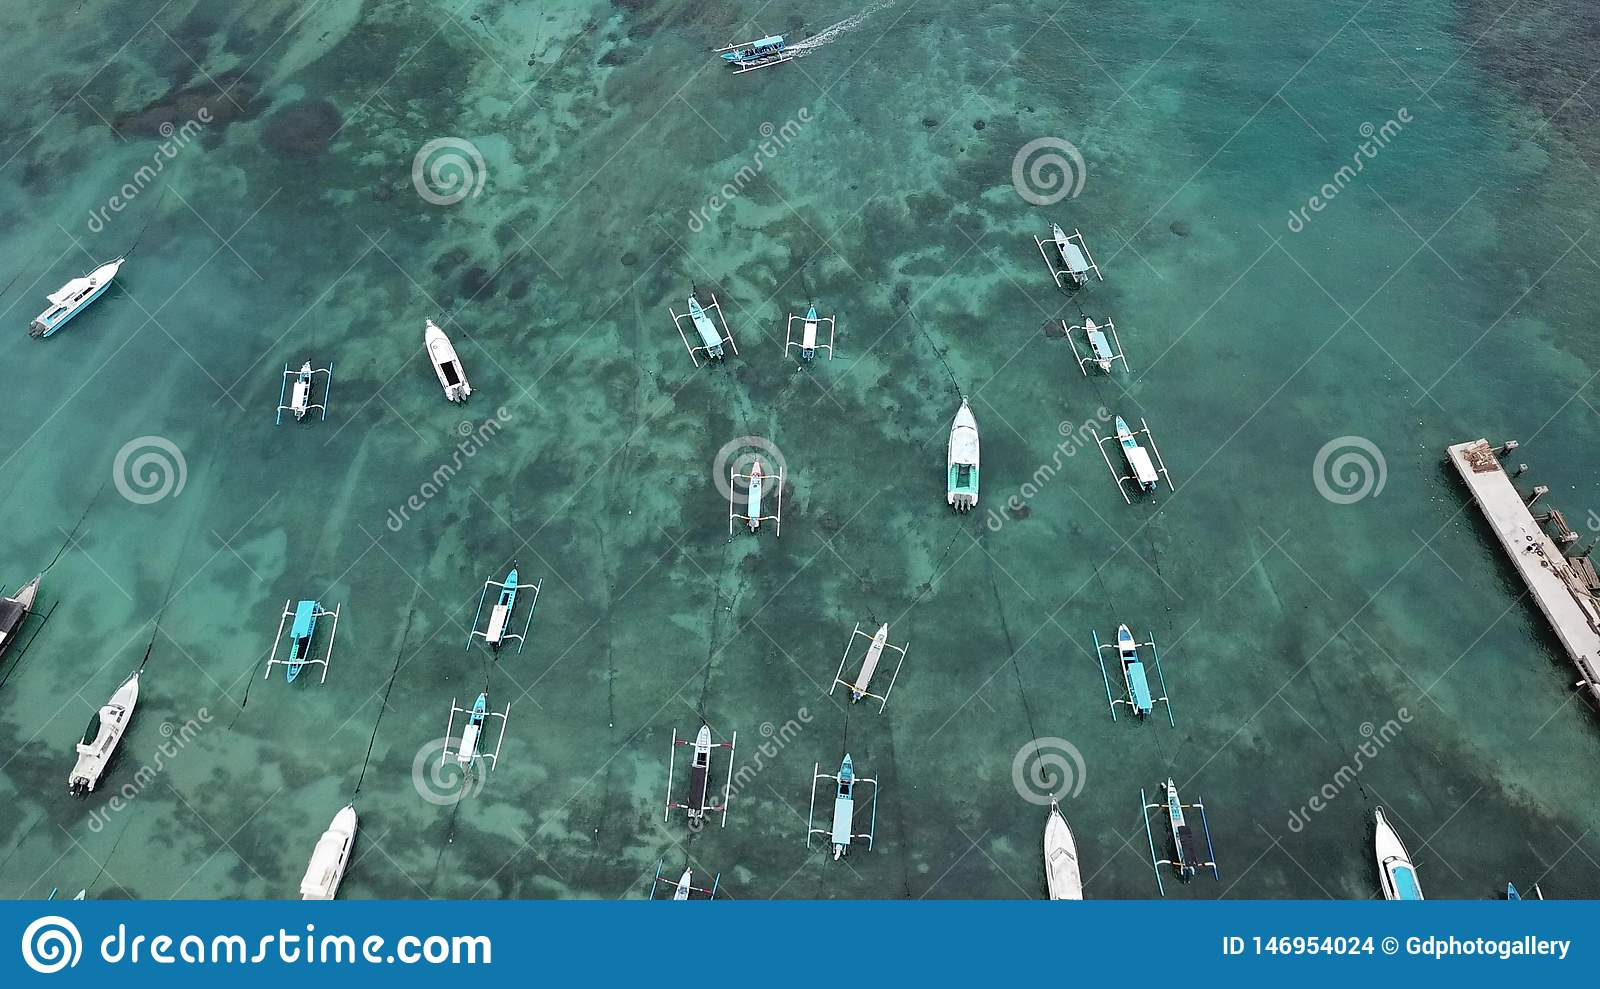 Traditional Balinese Fisher Boats at Sanur Beach, Bali, Indonesia. Drone`s view - Image